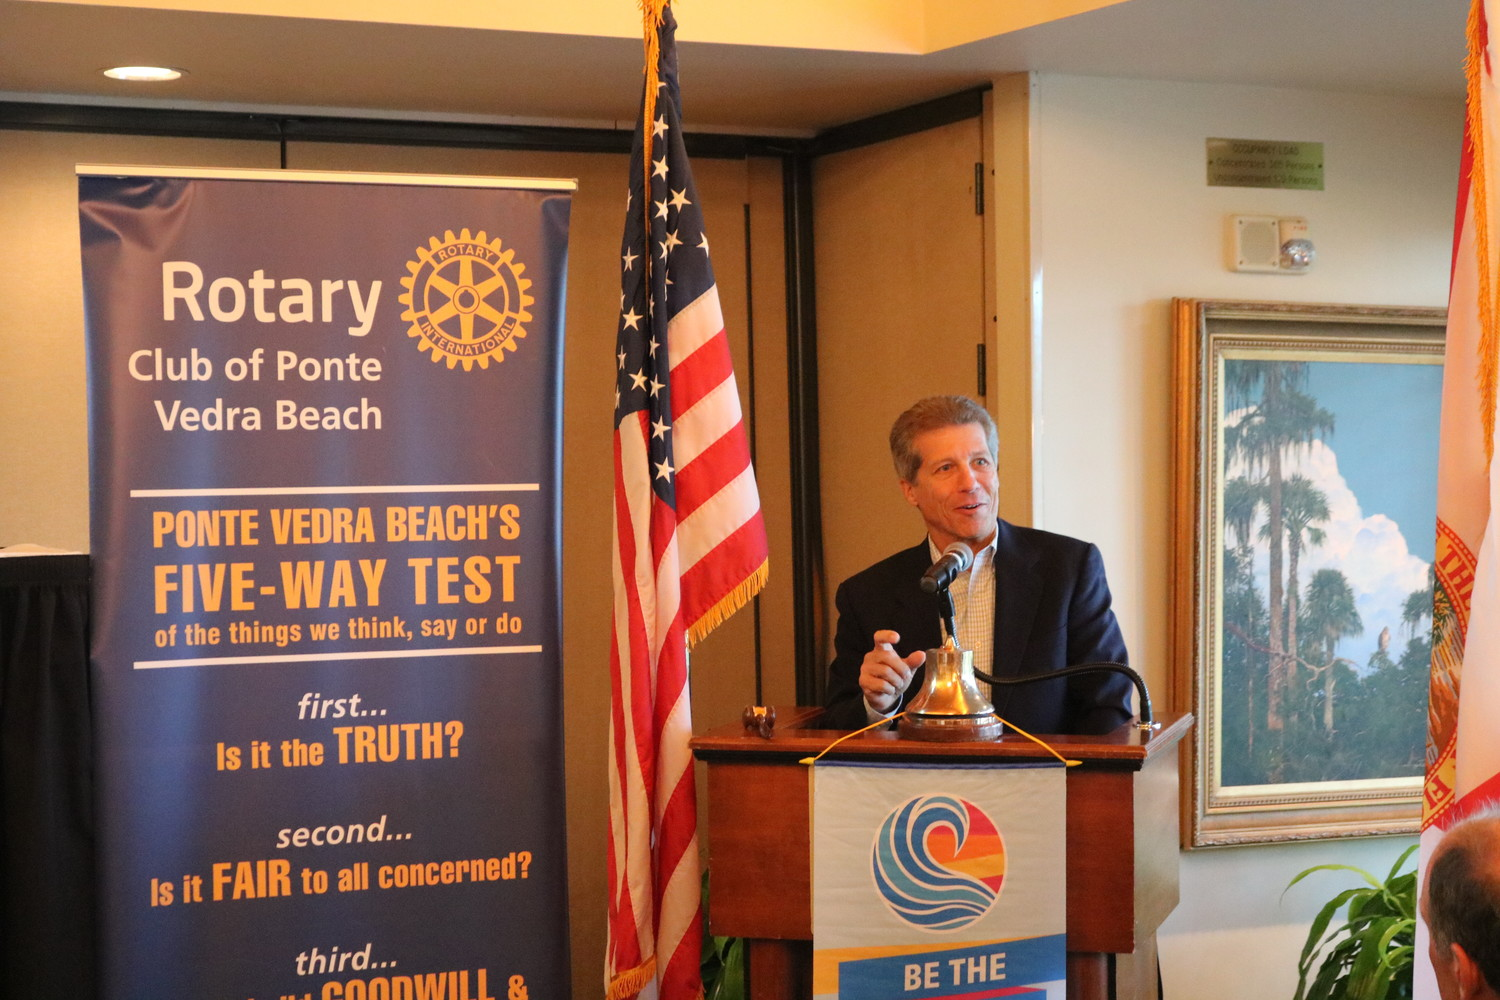 The PARC Group President and CEO Rick Ray addresses the Rotary Club of Ponte Vedra Beach on Thursday, Oct. 11 at Marsh Landing Country Club.